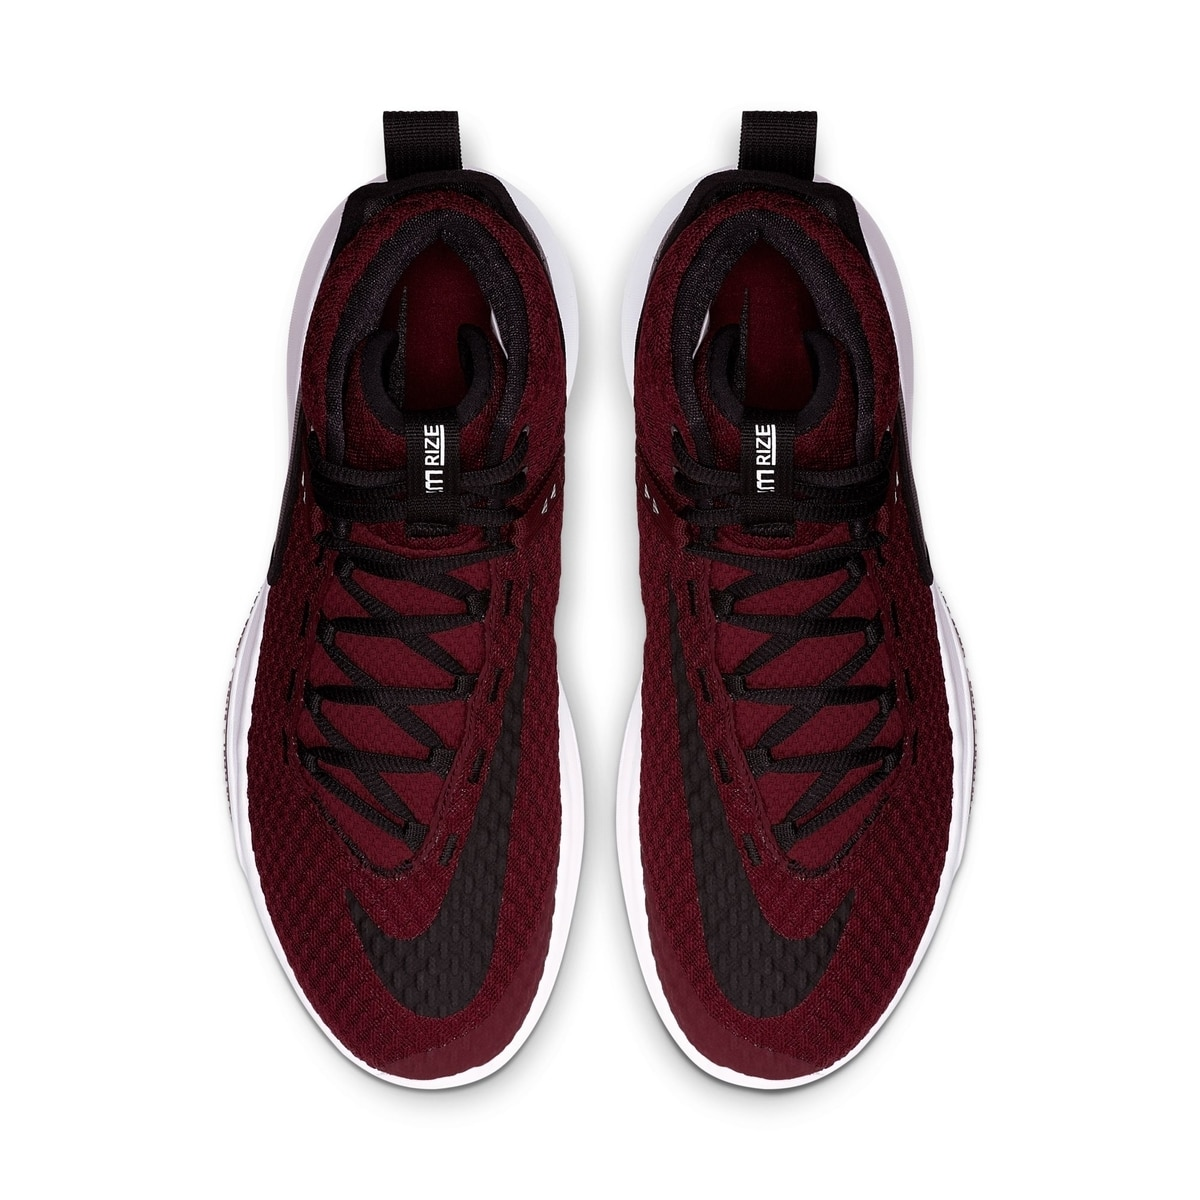 Nike Zoom Rize Official 12 Weartesters